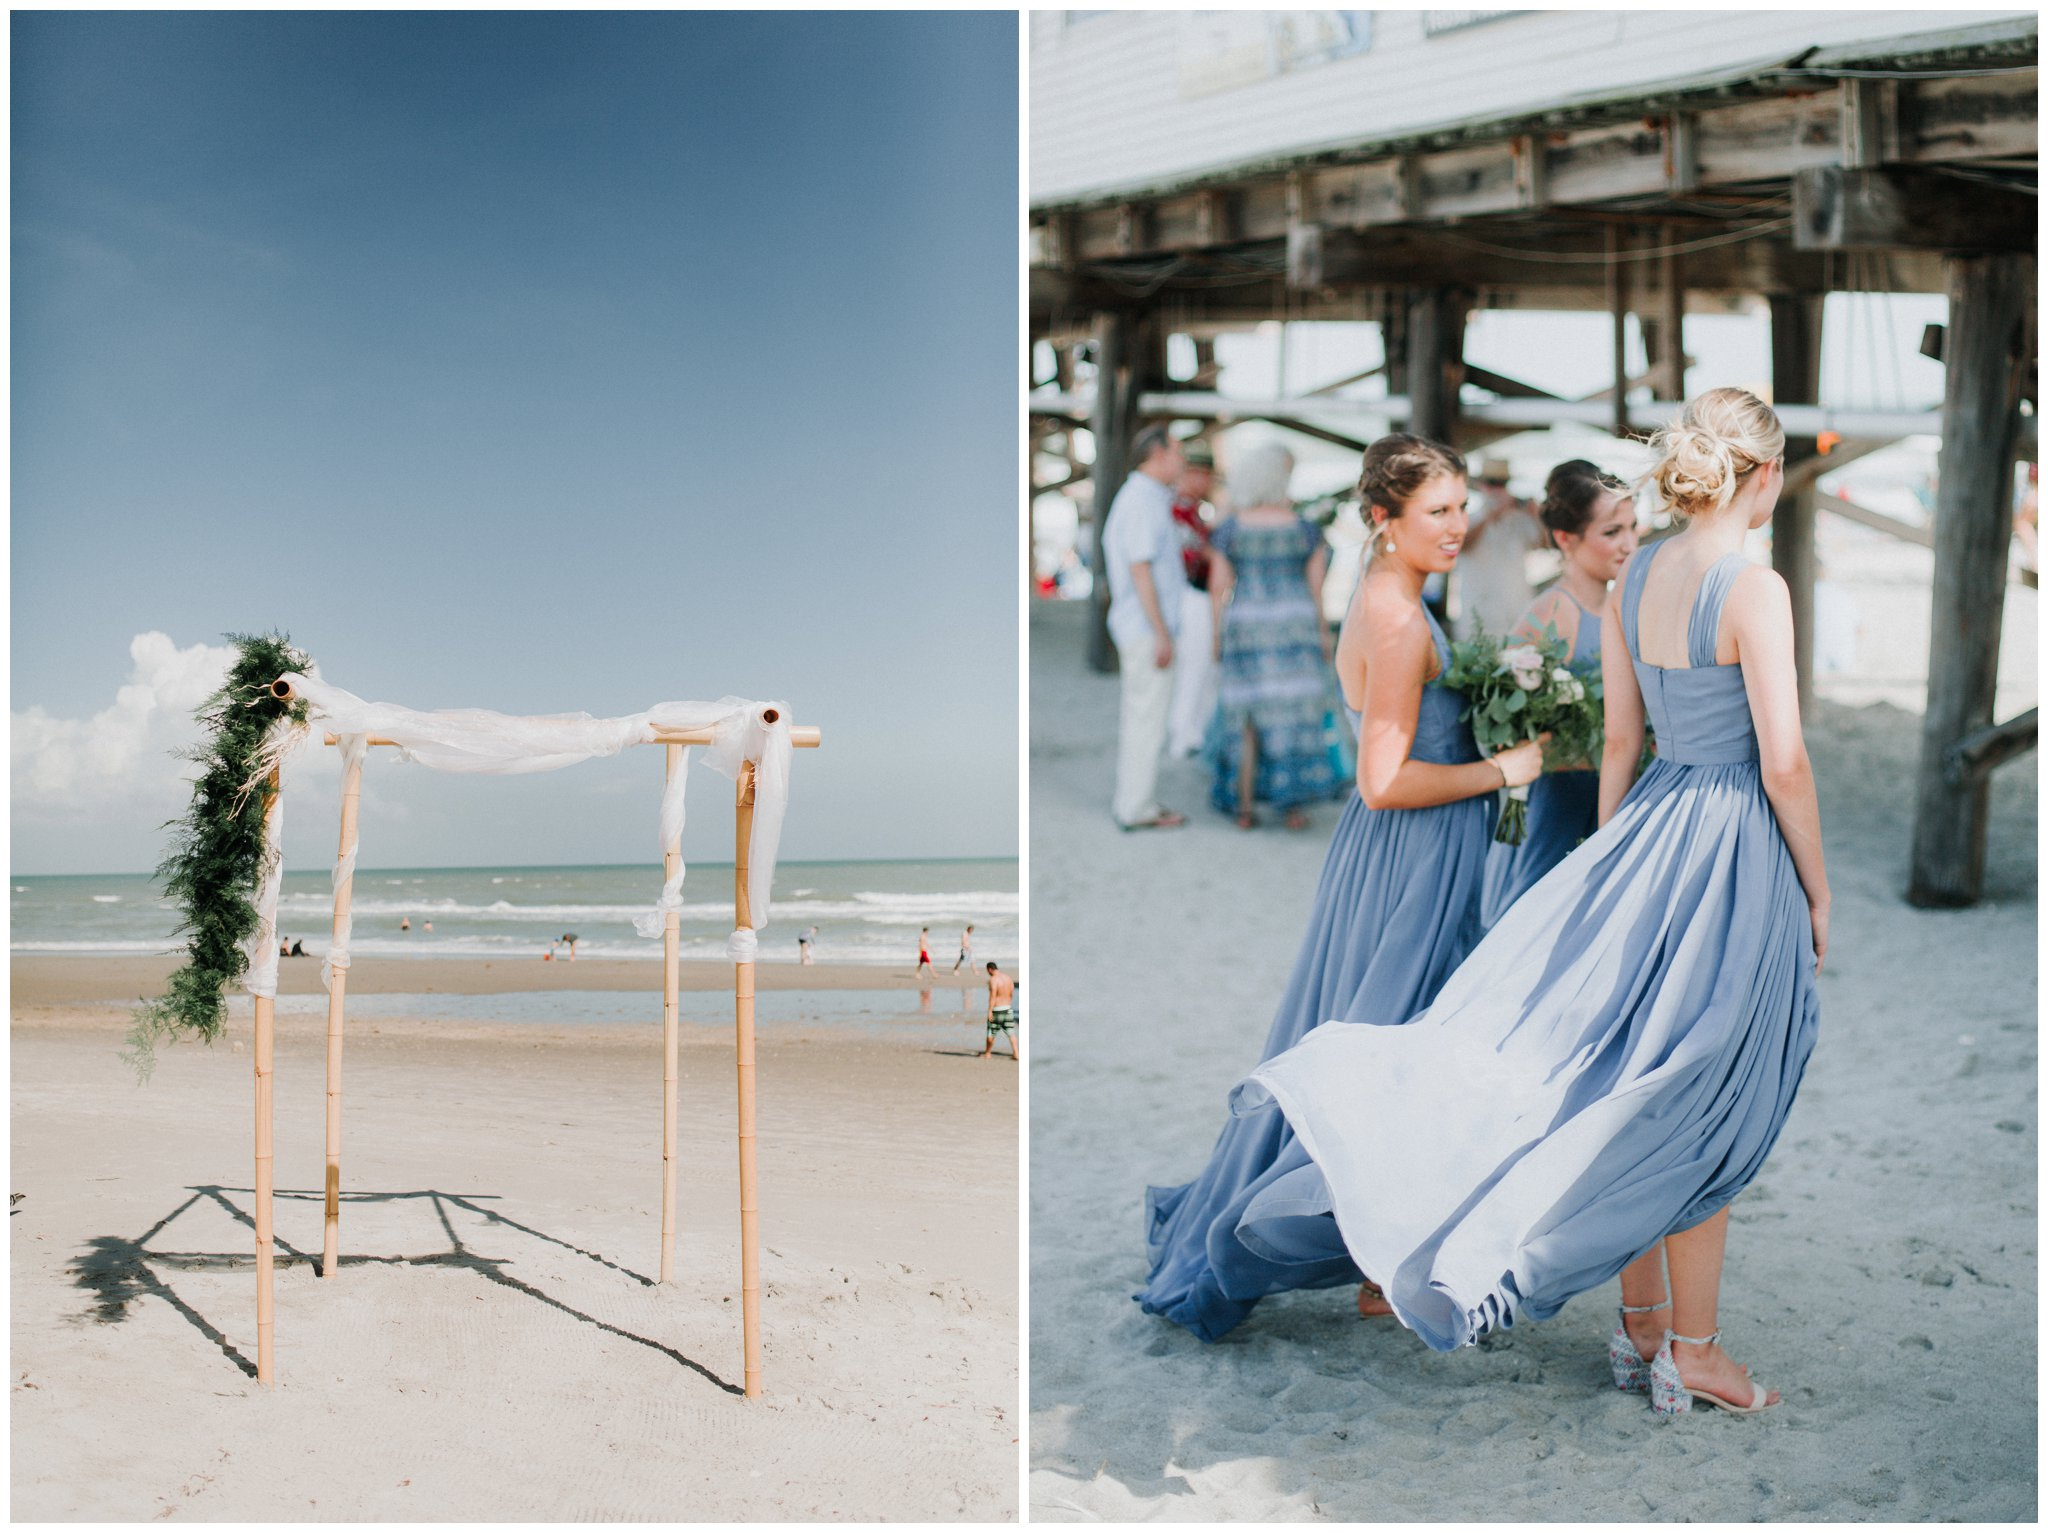 kaley and kevin-coco beach pier wedding-kimberly smith photography_0023.jpg